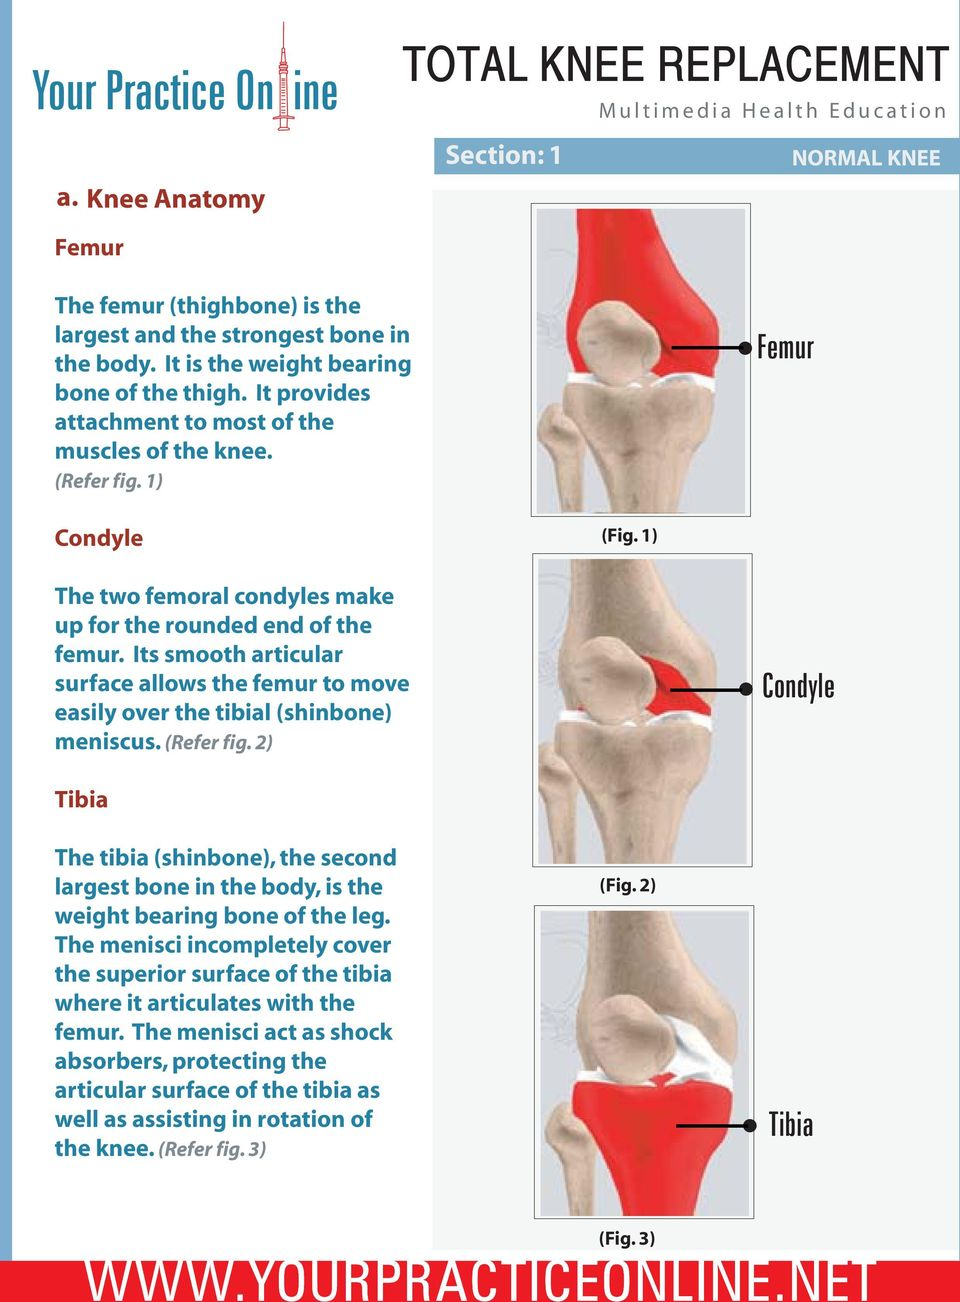 Its smooth articular surface allows the femur to move easily over the tibial (shinbone) meniscus. (Refer fig.